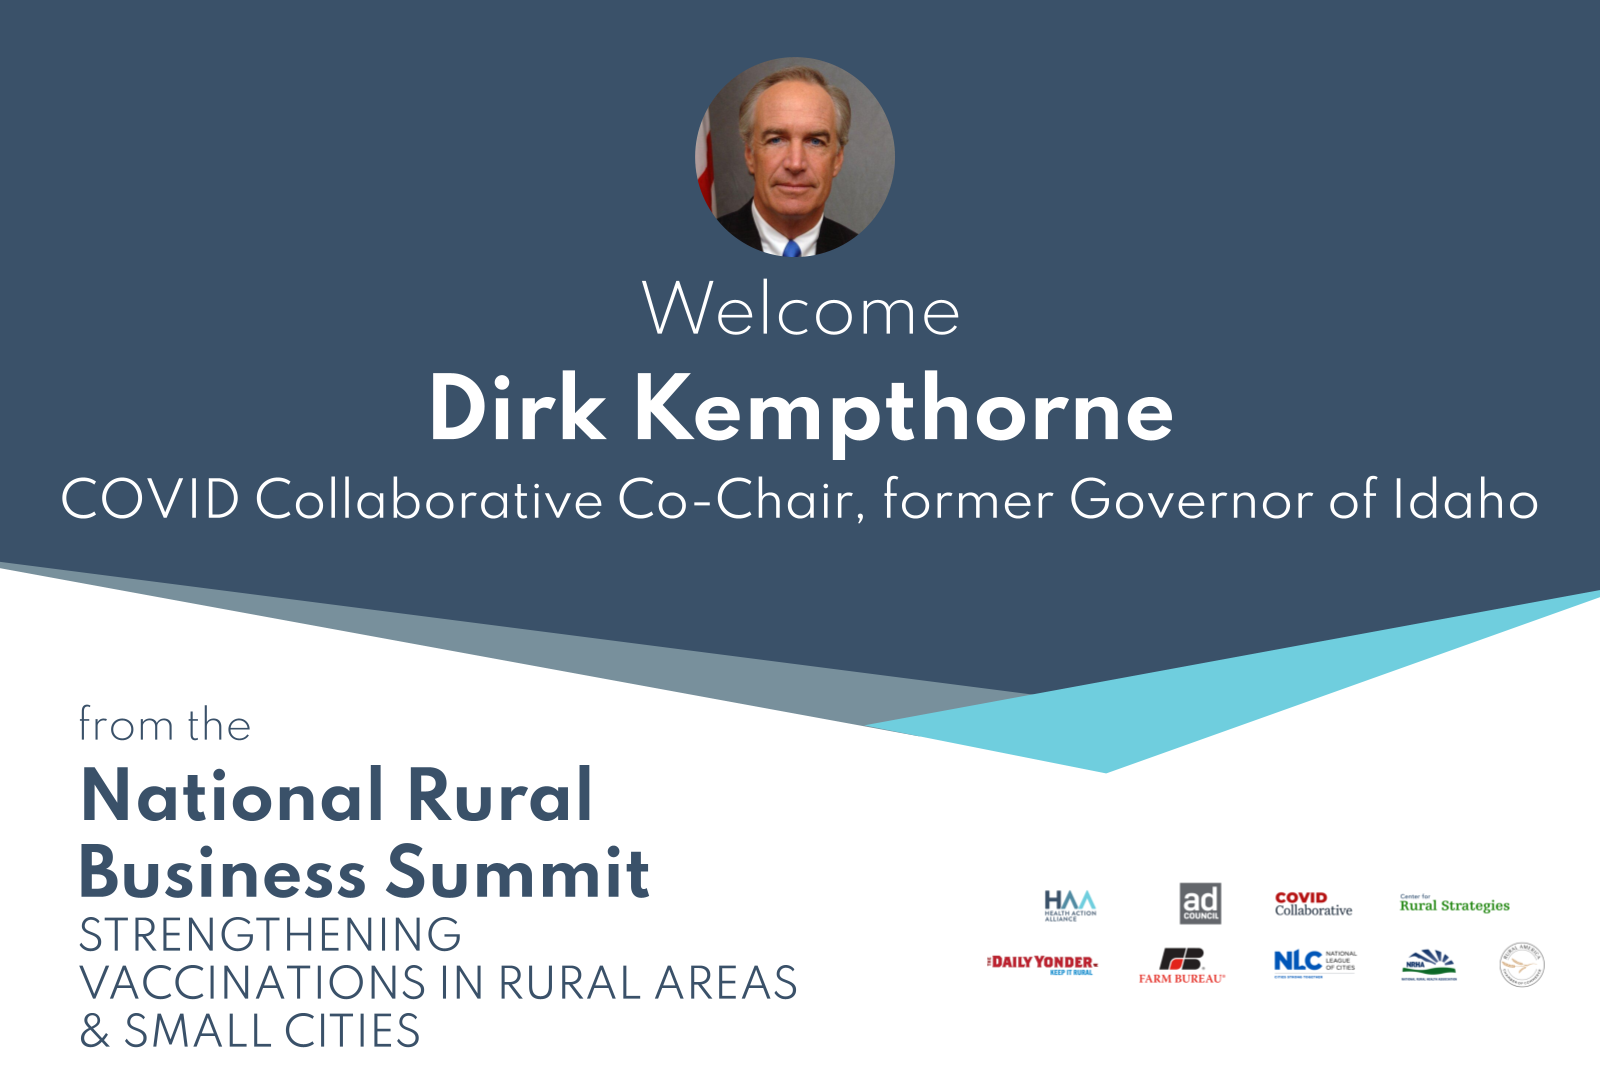 Introduction by Dirk Kempthorne